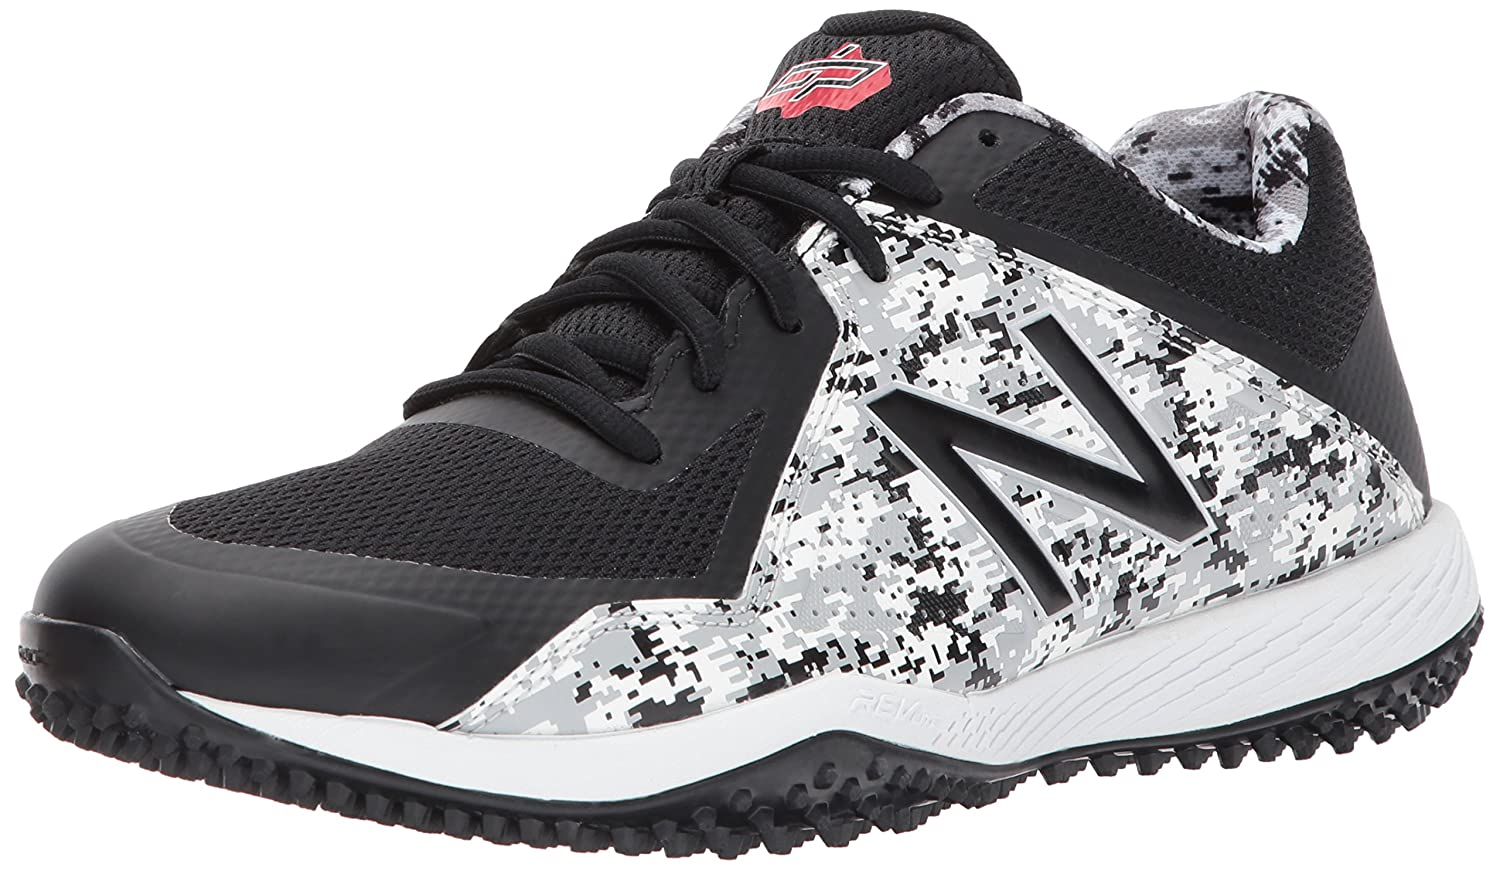 New Balance Men's T4040v4 Turf Baseball Shoe B01MQLSBJ7 8 2E US|Black Camo